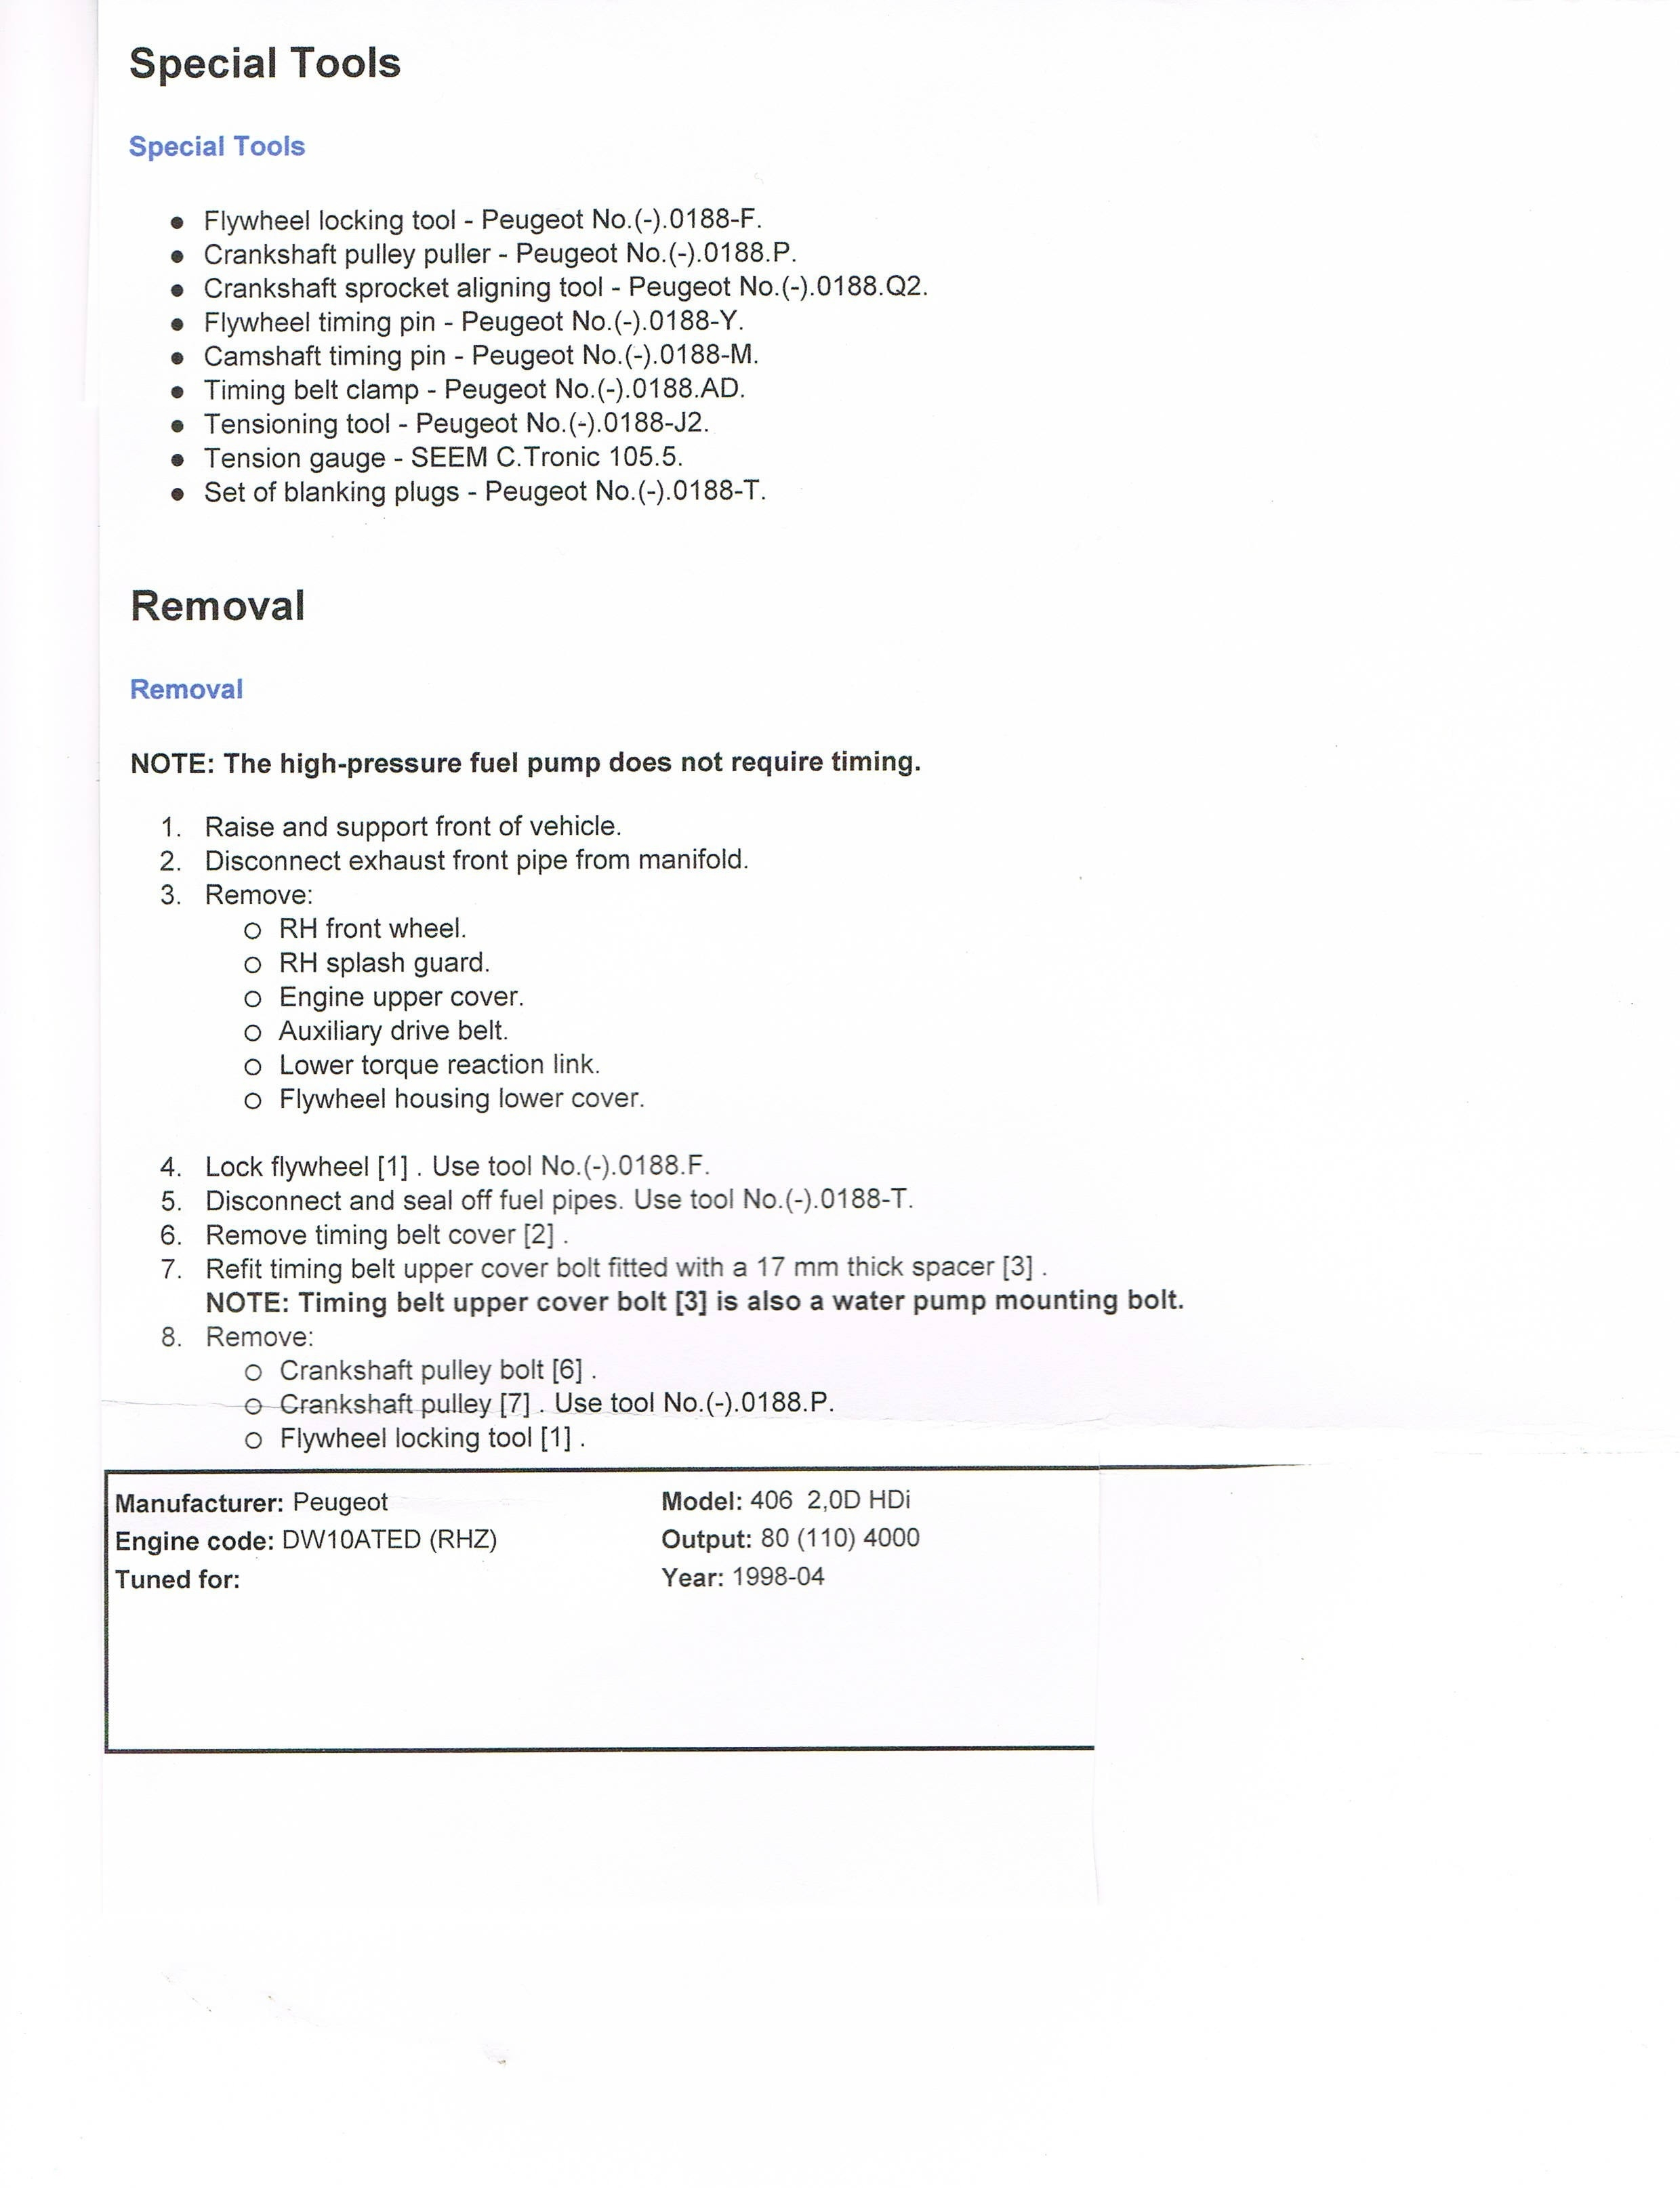 Resume Template for Actors - Employee Verification Letter New Cfo Resume Template Inspirational